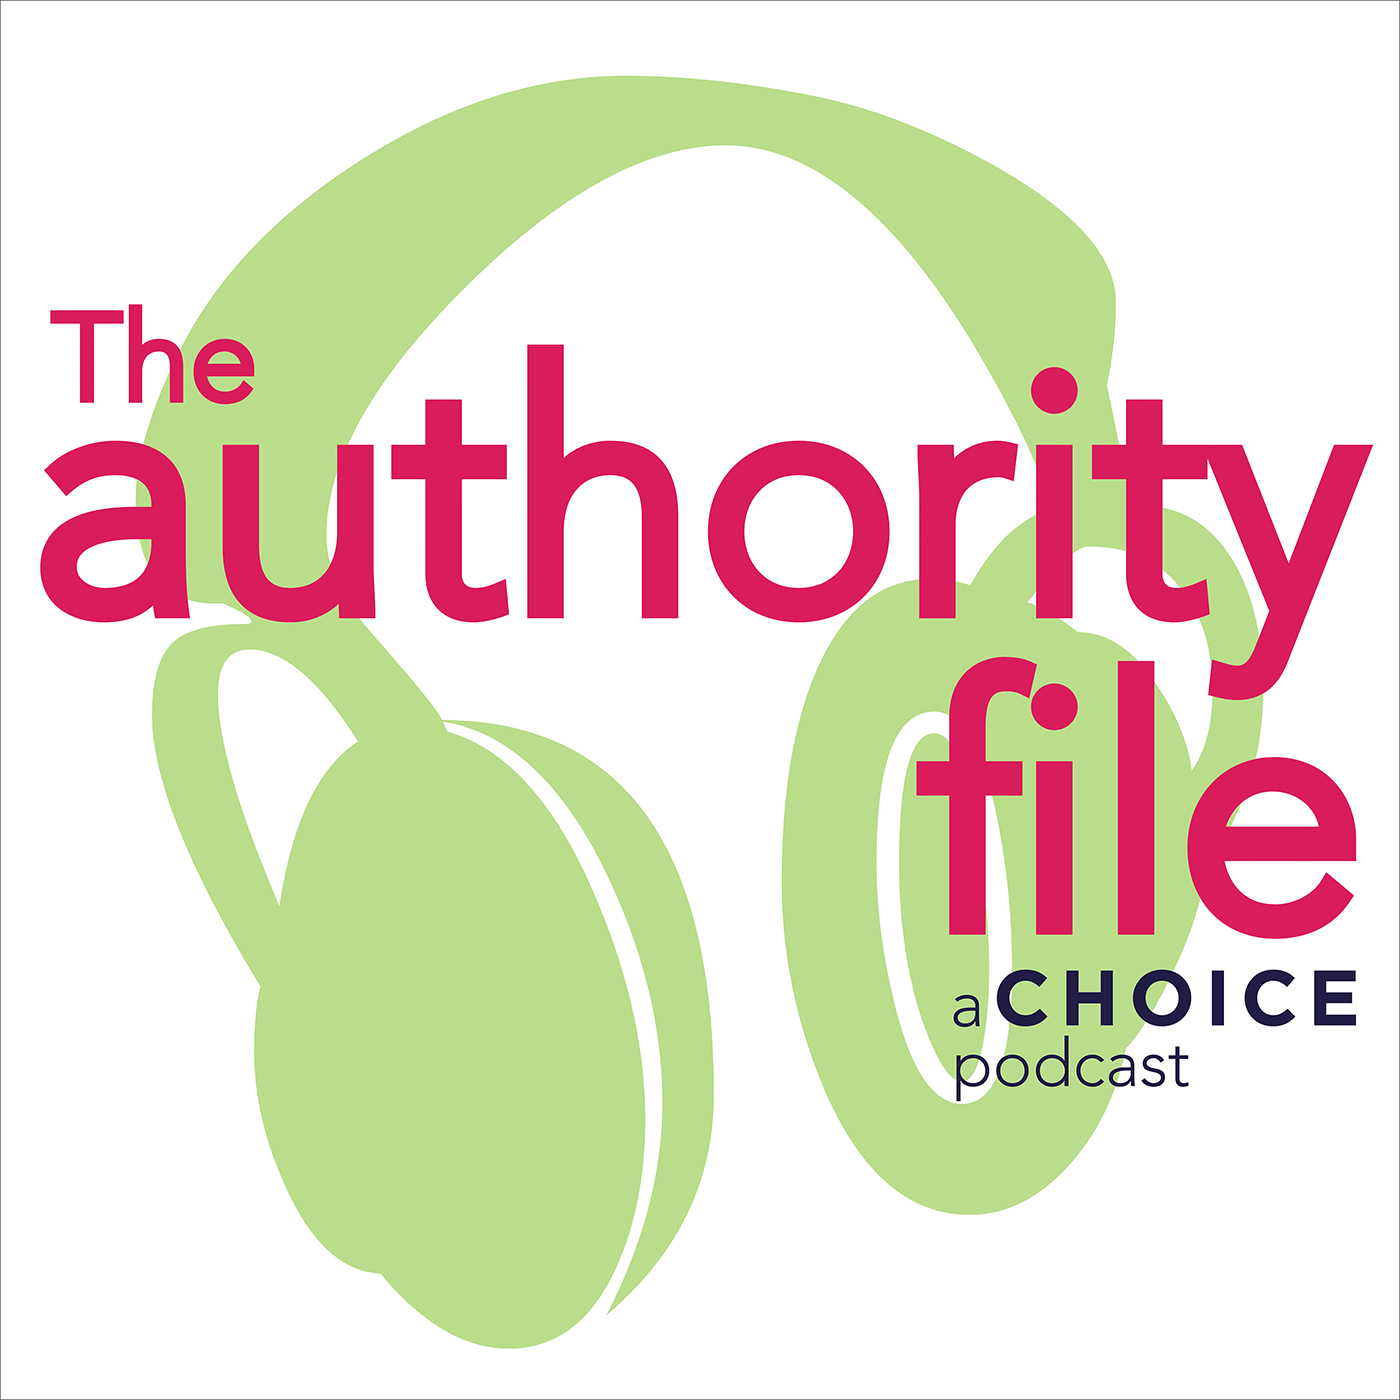 The authority file